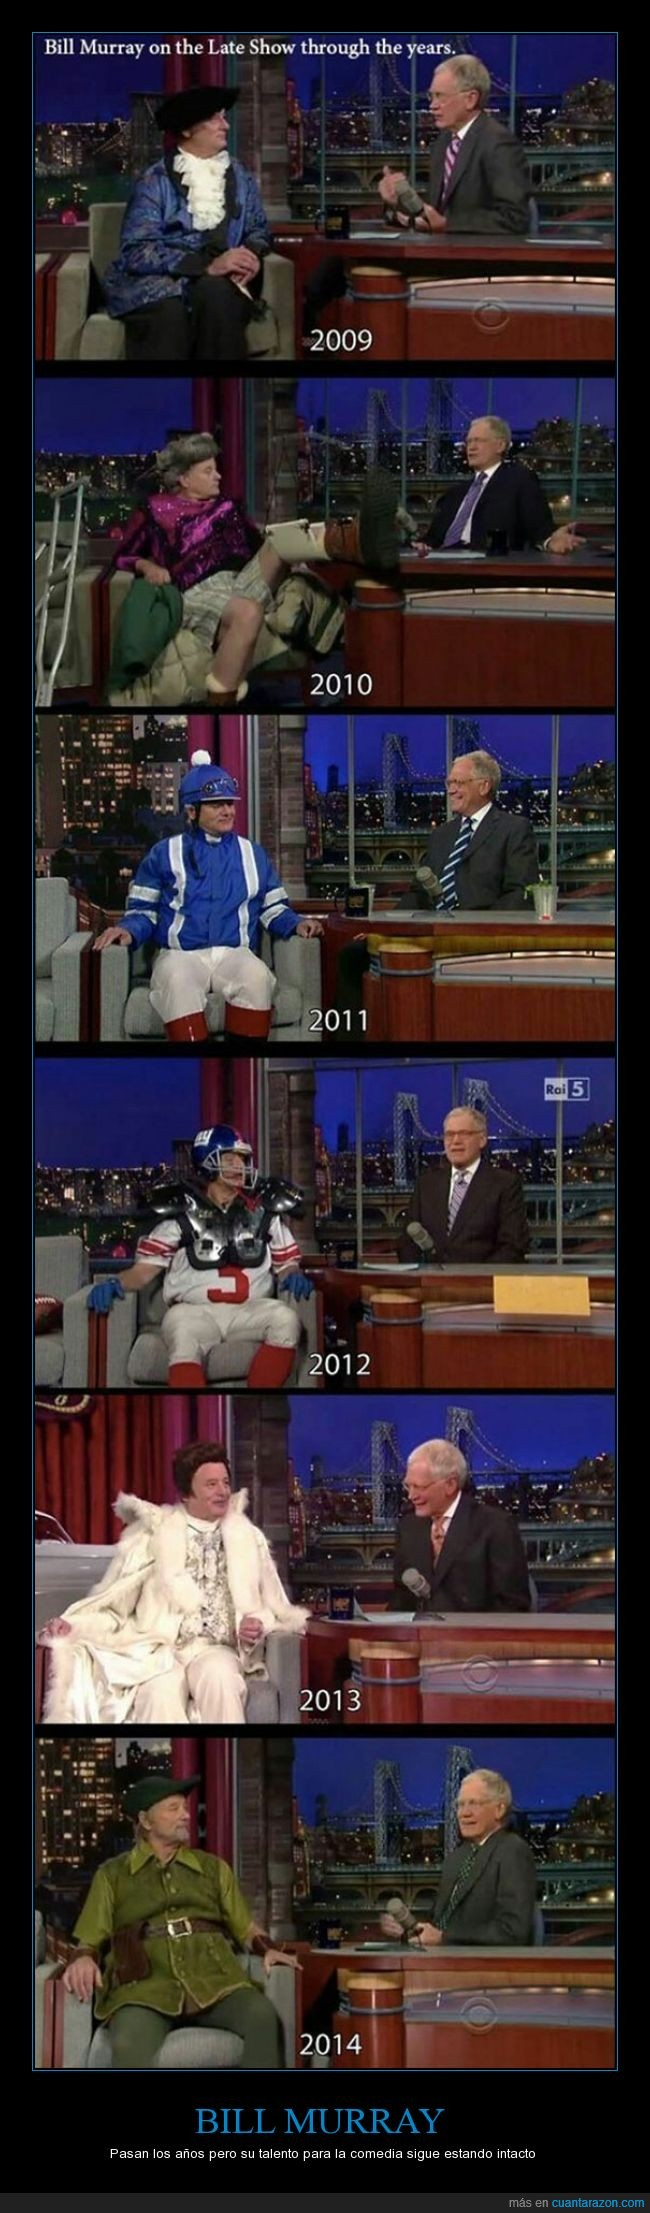 Bill Murray,de los mios,disfraz,genio de la comedio,gran bill,late show